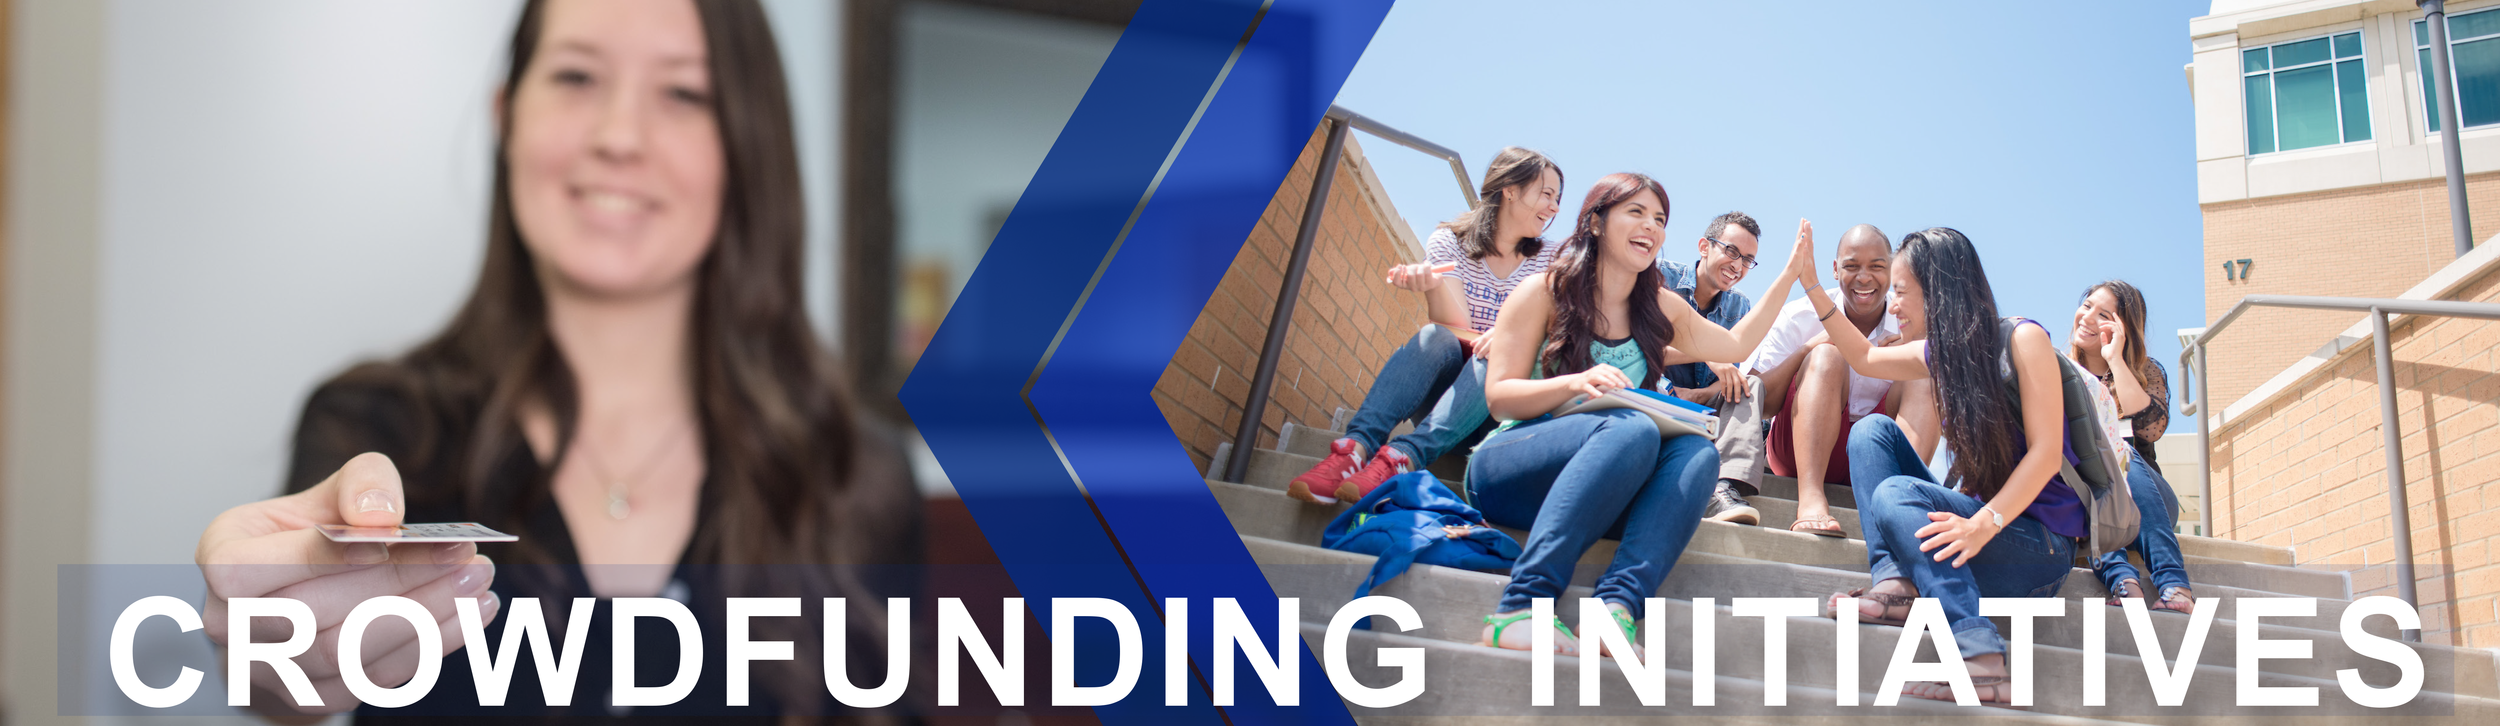 Crowdfunding Initiatives page banner features a close up image of a student handing someone a card. Second image shows a group of students sitting outside on steps laughing, smiling and high-fiving.